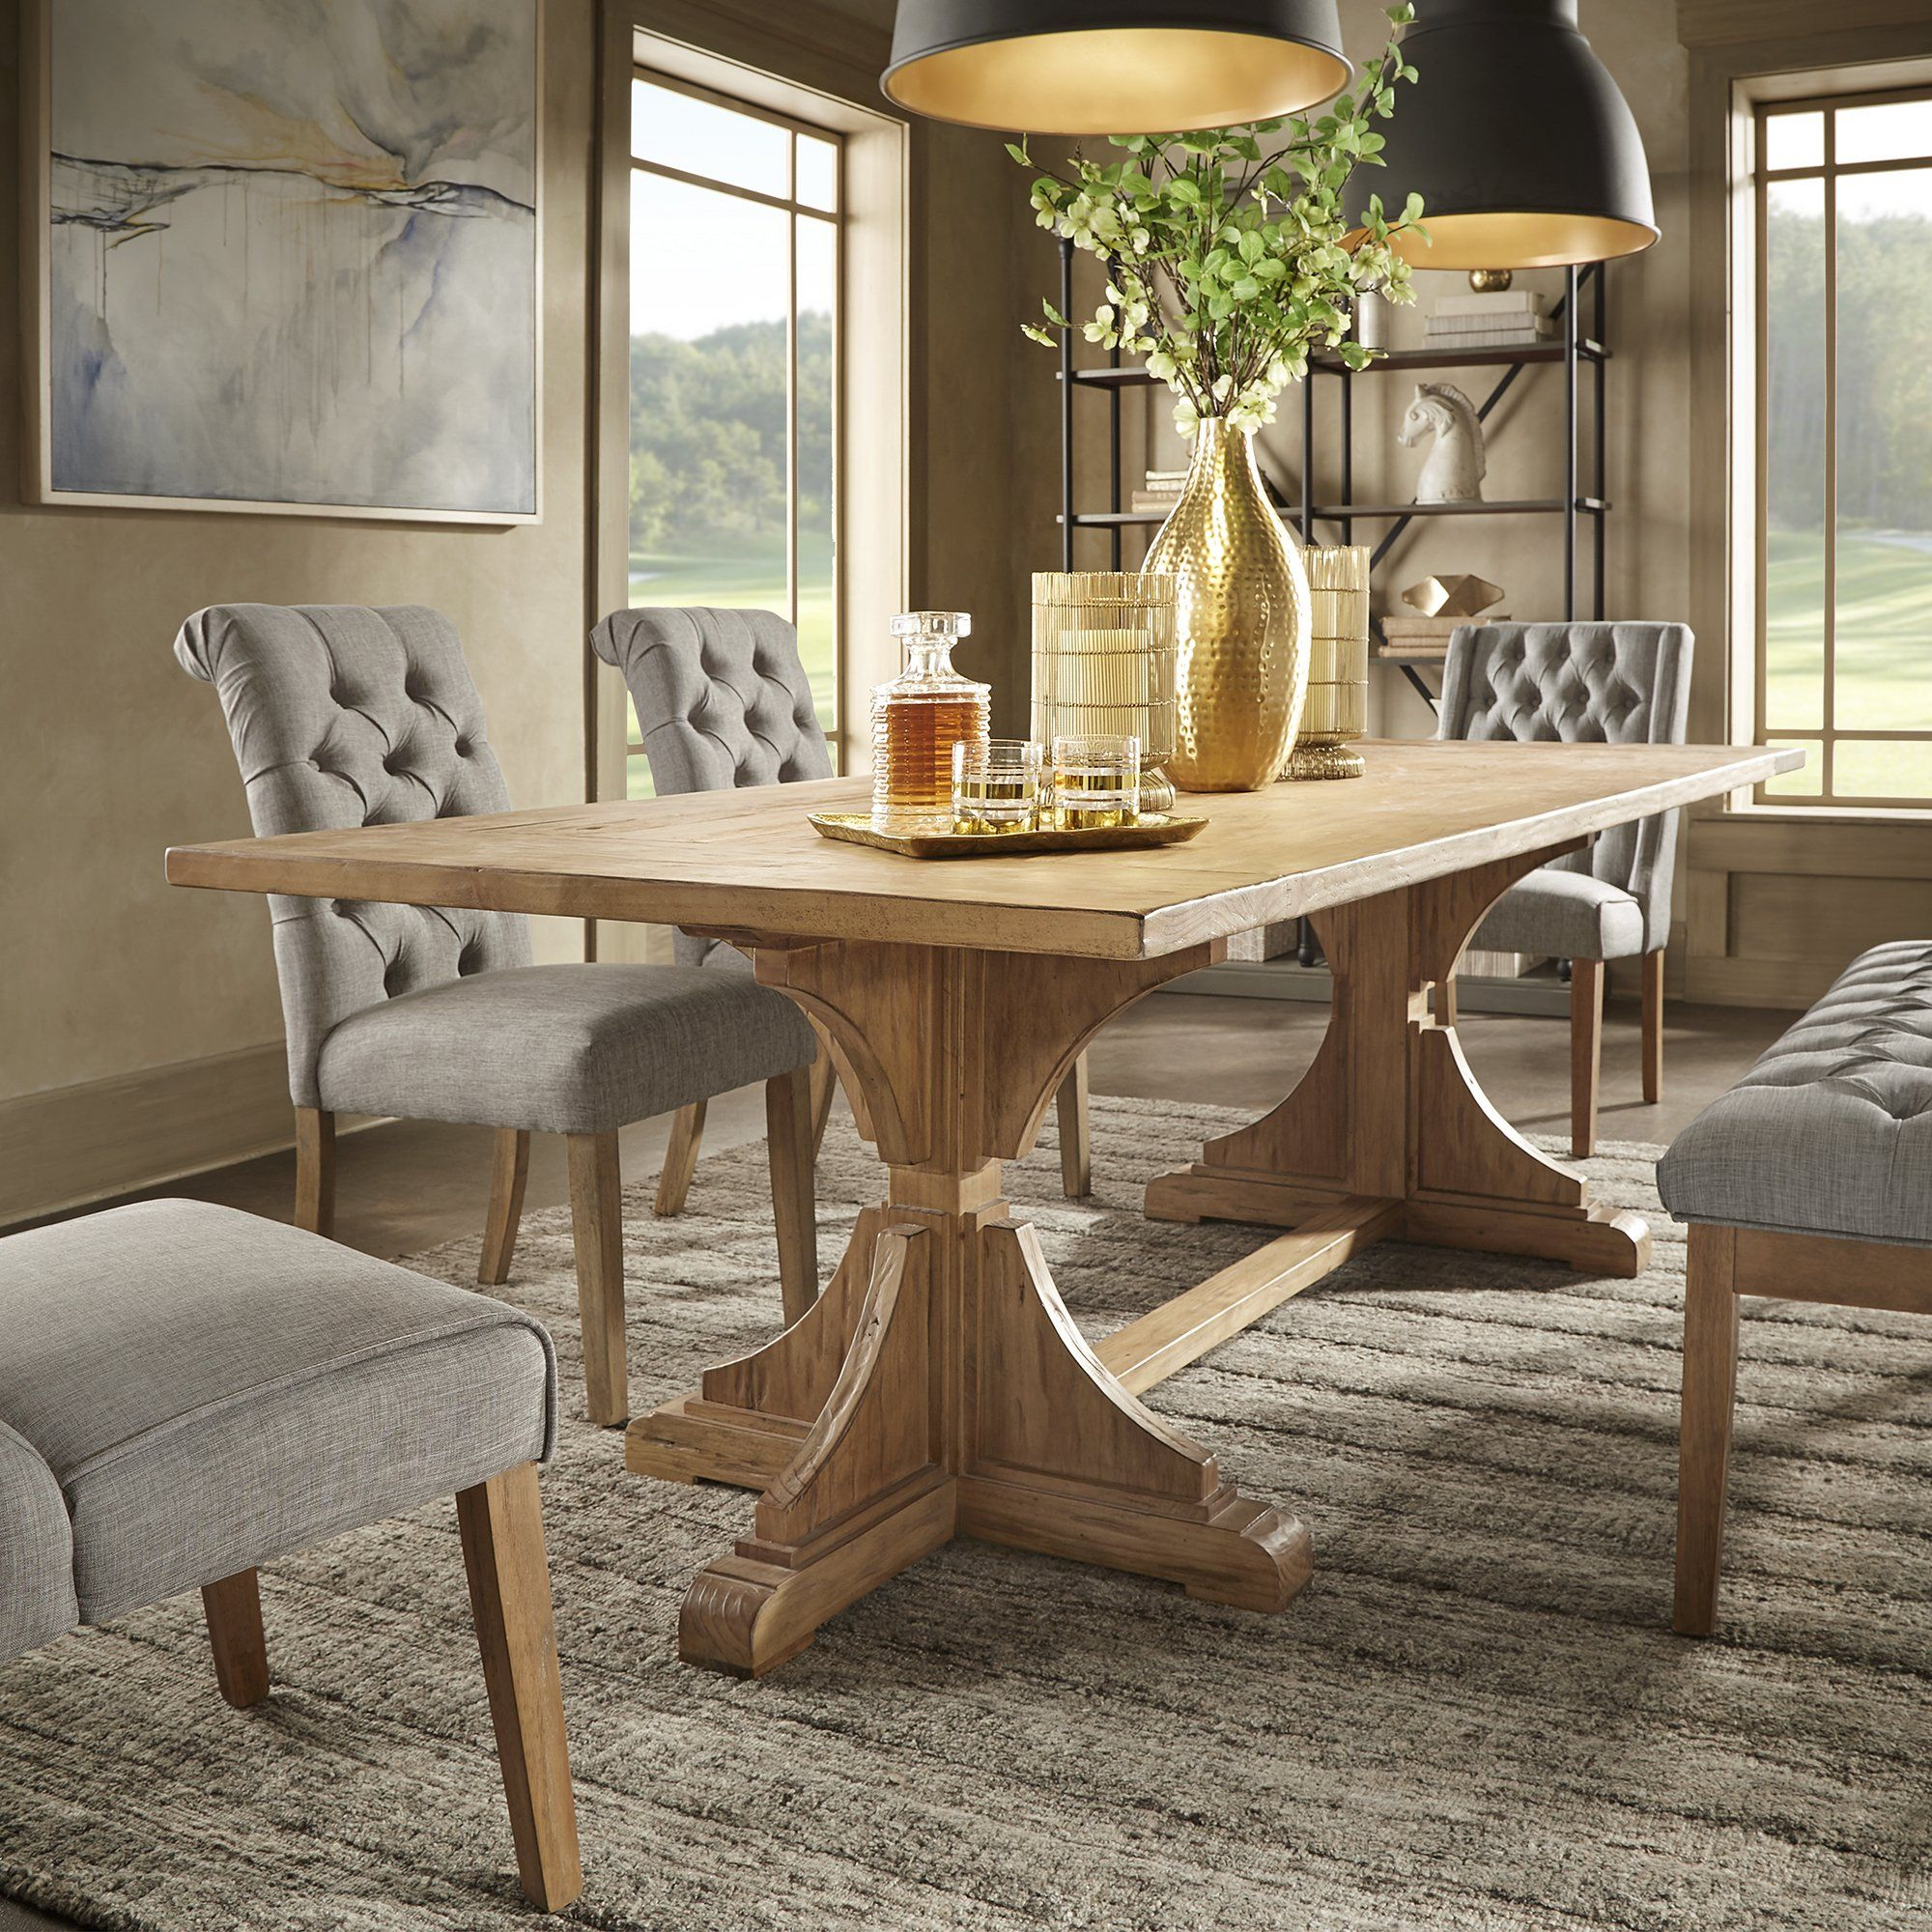 Yarla Reclaimed Natural Finish 96 Inch Trestle Dining Table By